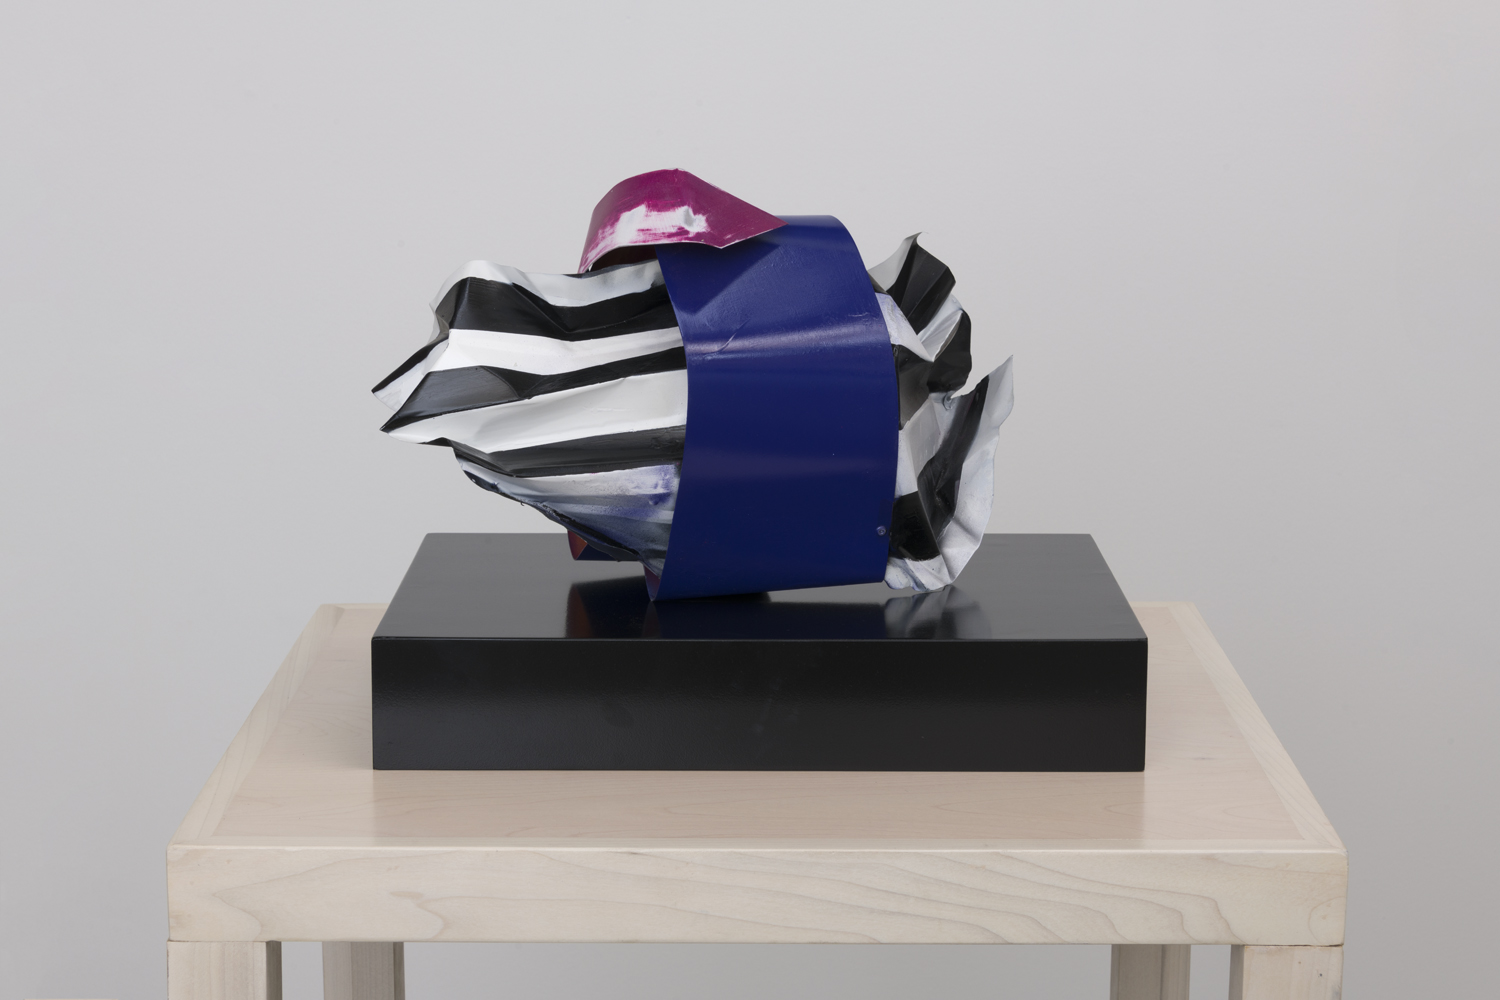 Nora Shields  Box Set One, 2018  Acrylic, aluminum, lacquer, and wood  12.5 x 11 x 13 inches